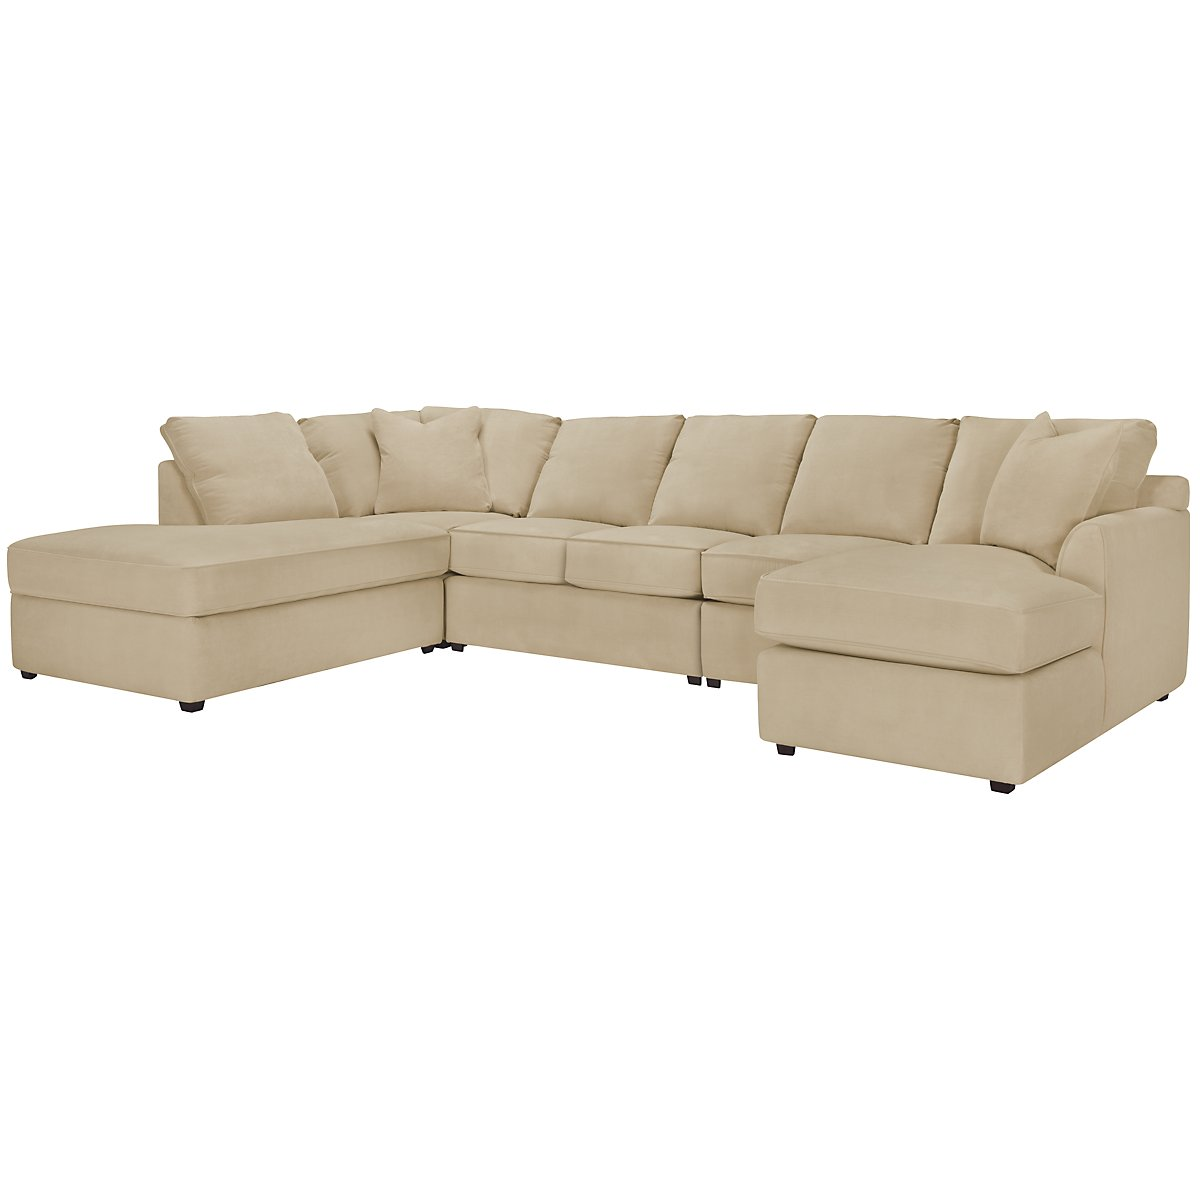 Express3 Lt Beige Microfiber Large Left Bumper Sectional